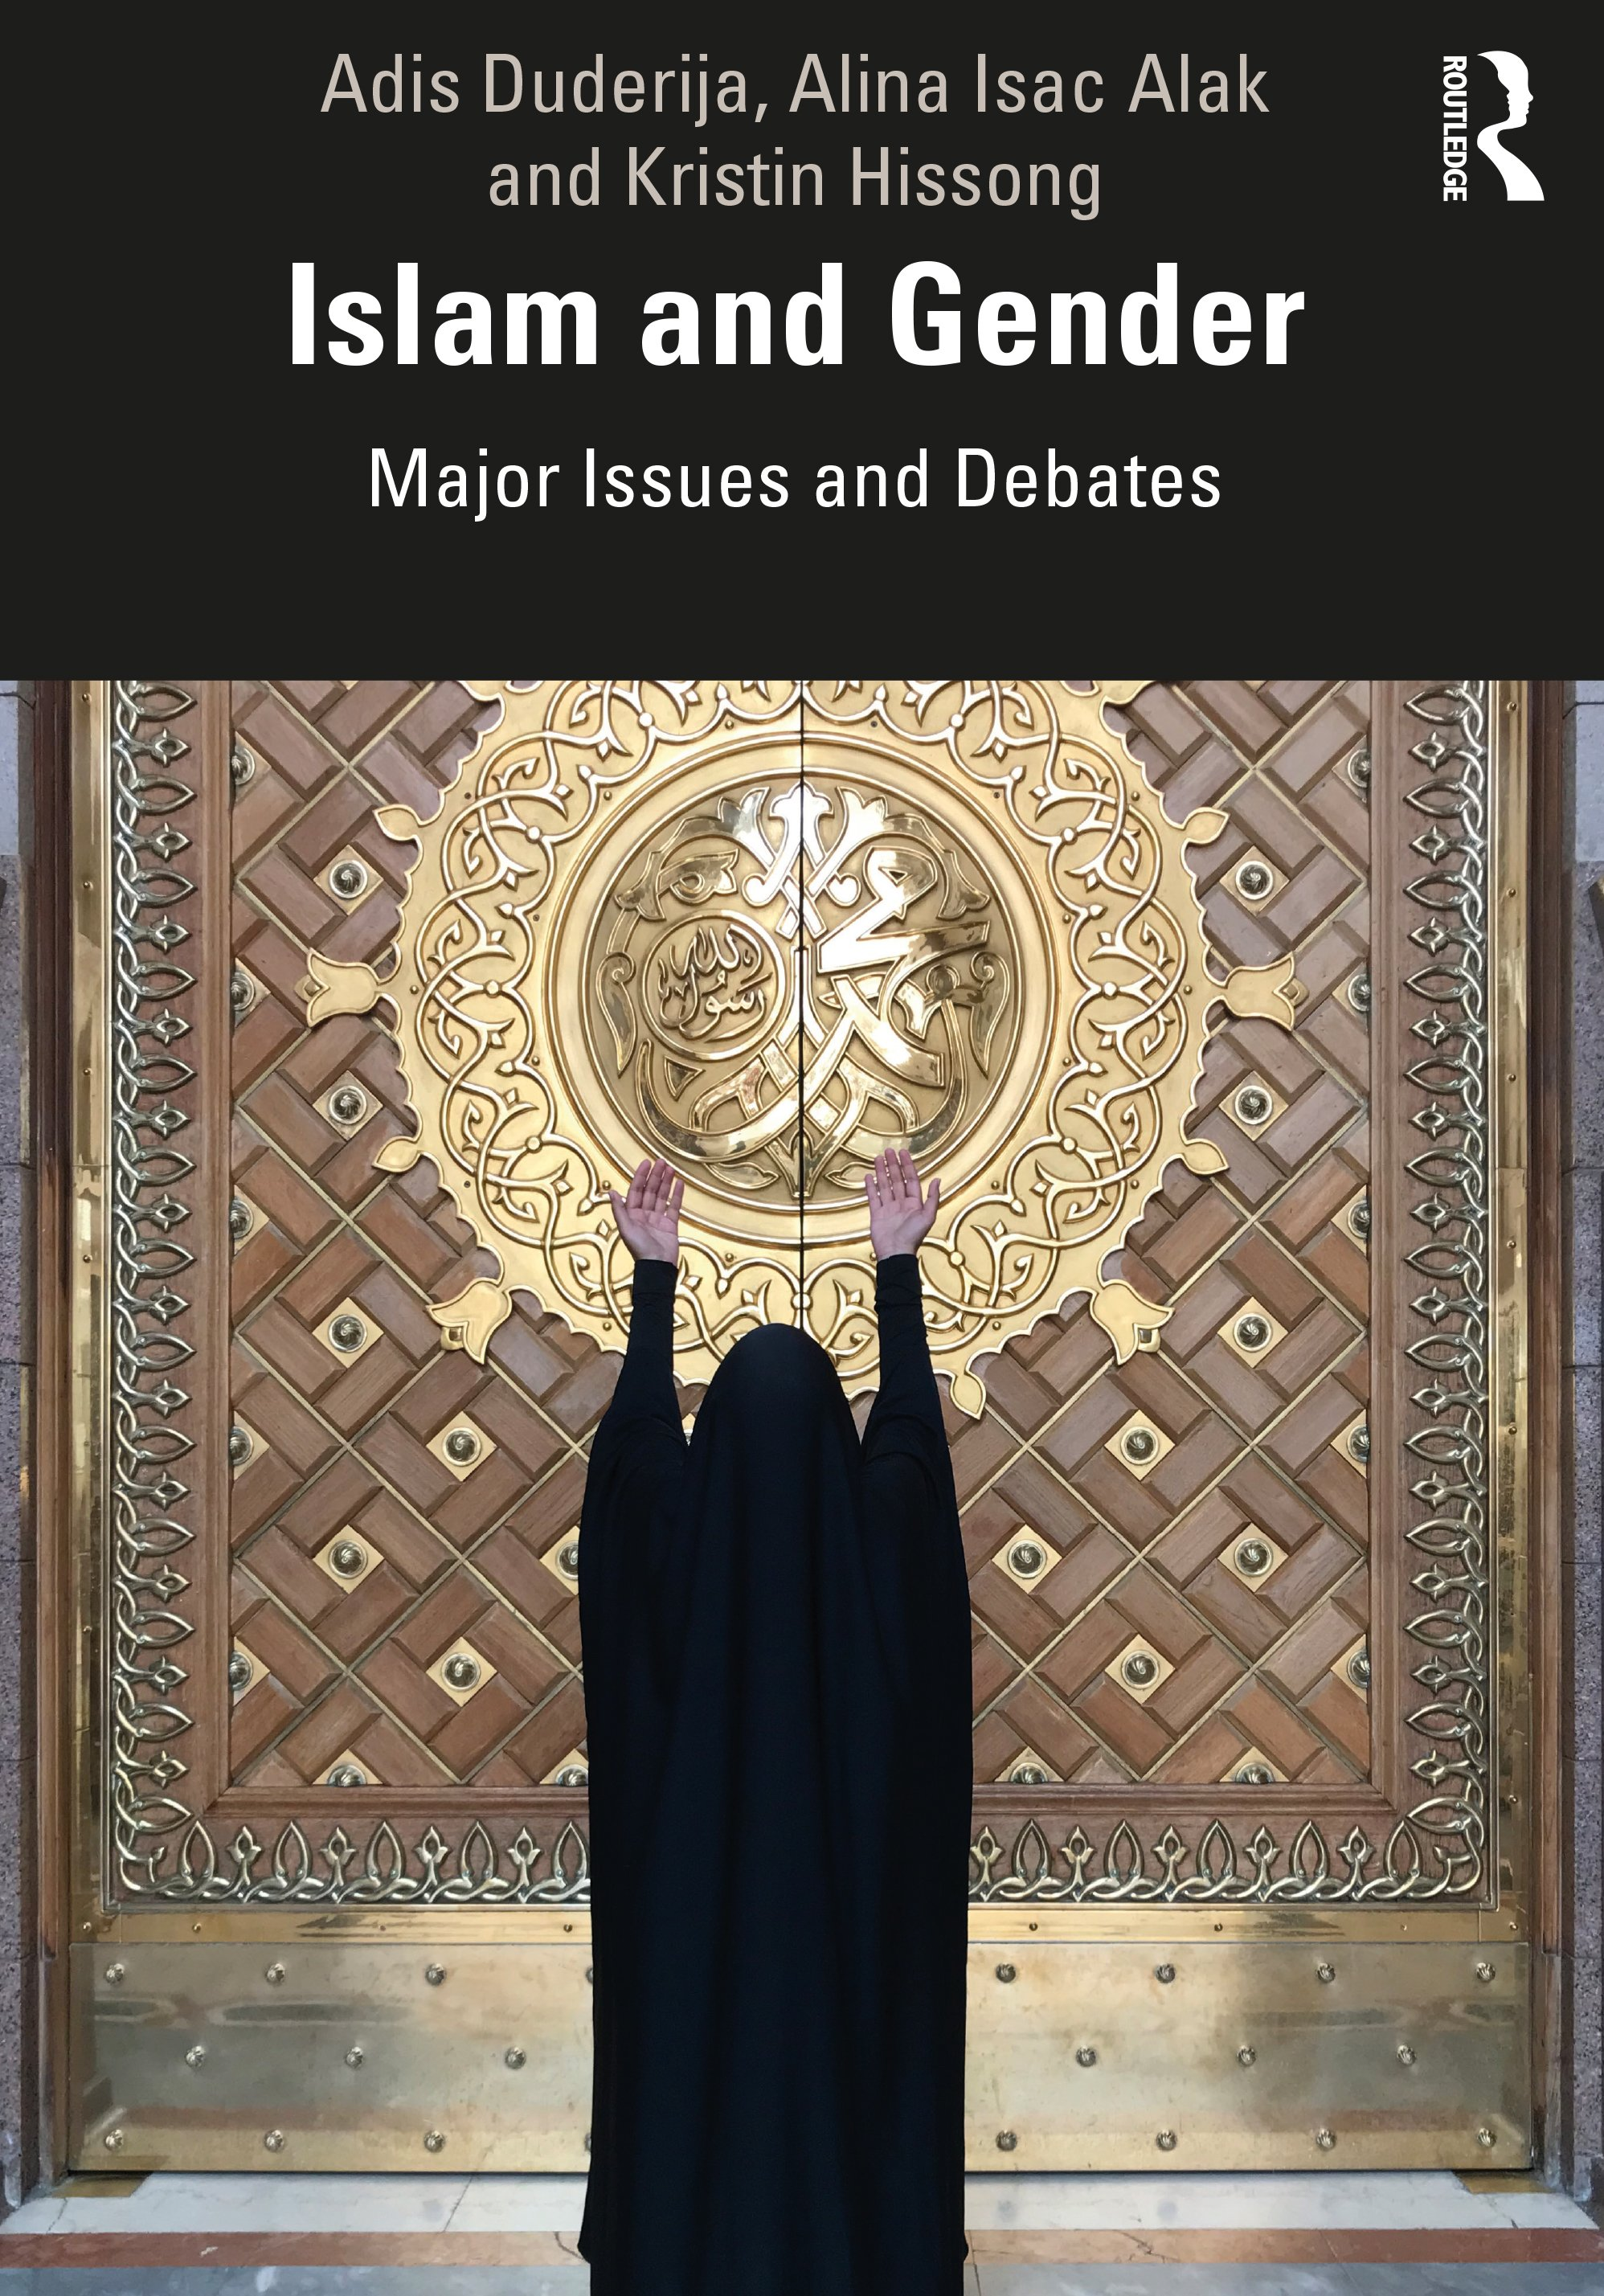 Islam and Gender: Major Issues and Debates book cover